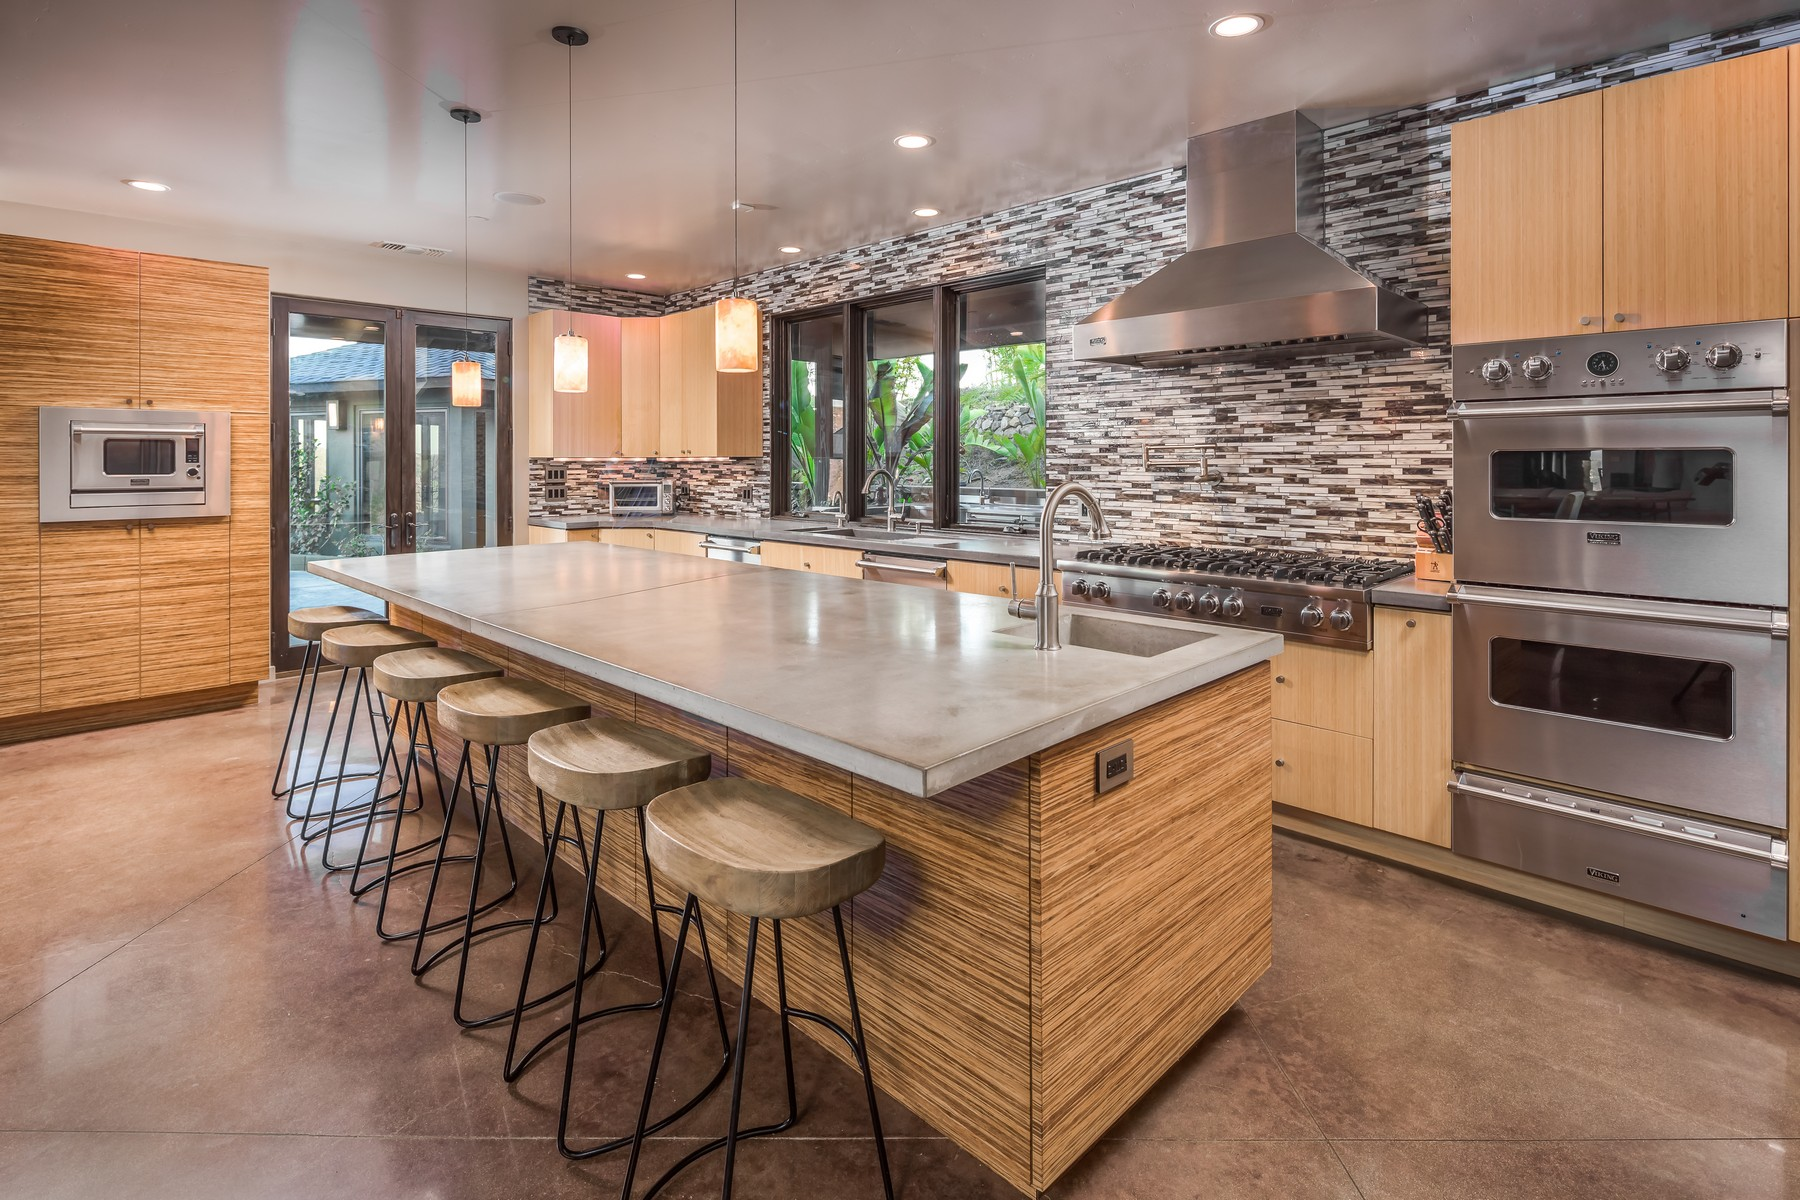 Additional photo for property listing at 20877 Wild Willow Hollow Road  Escondido, Калифорния 92029 Соединенные Штаты